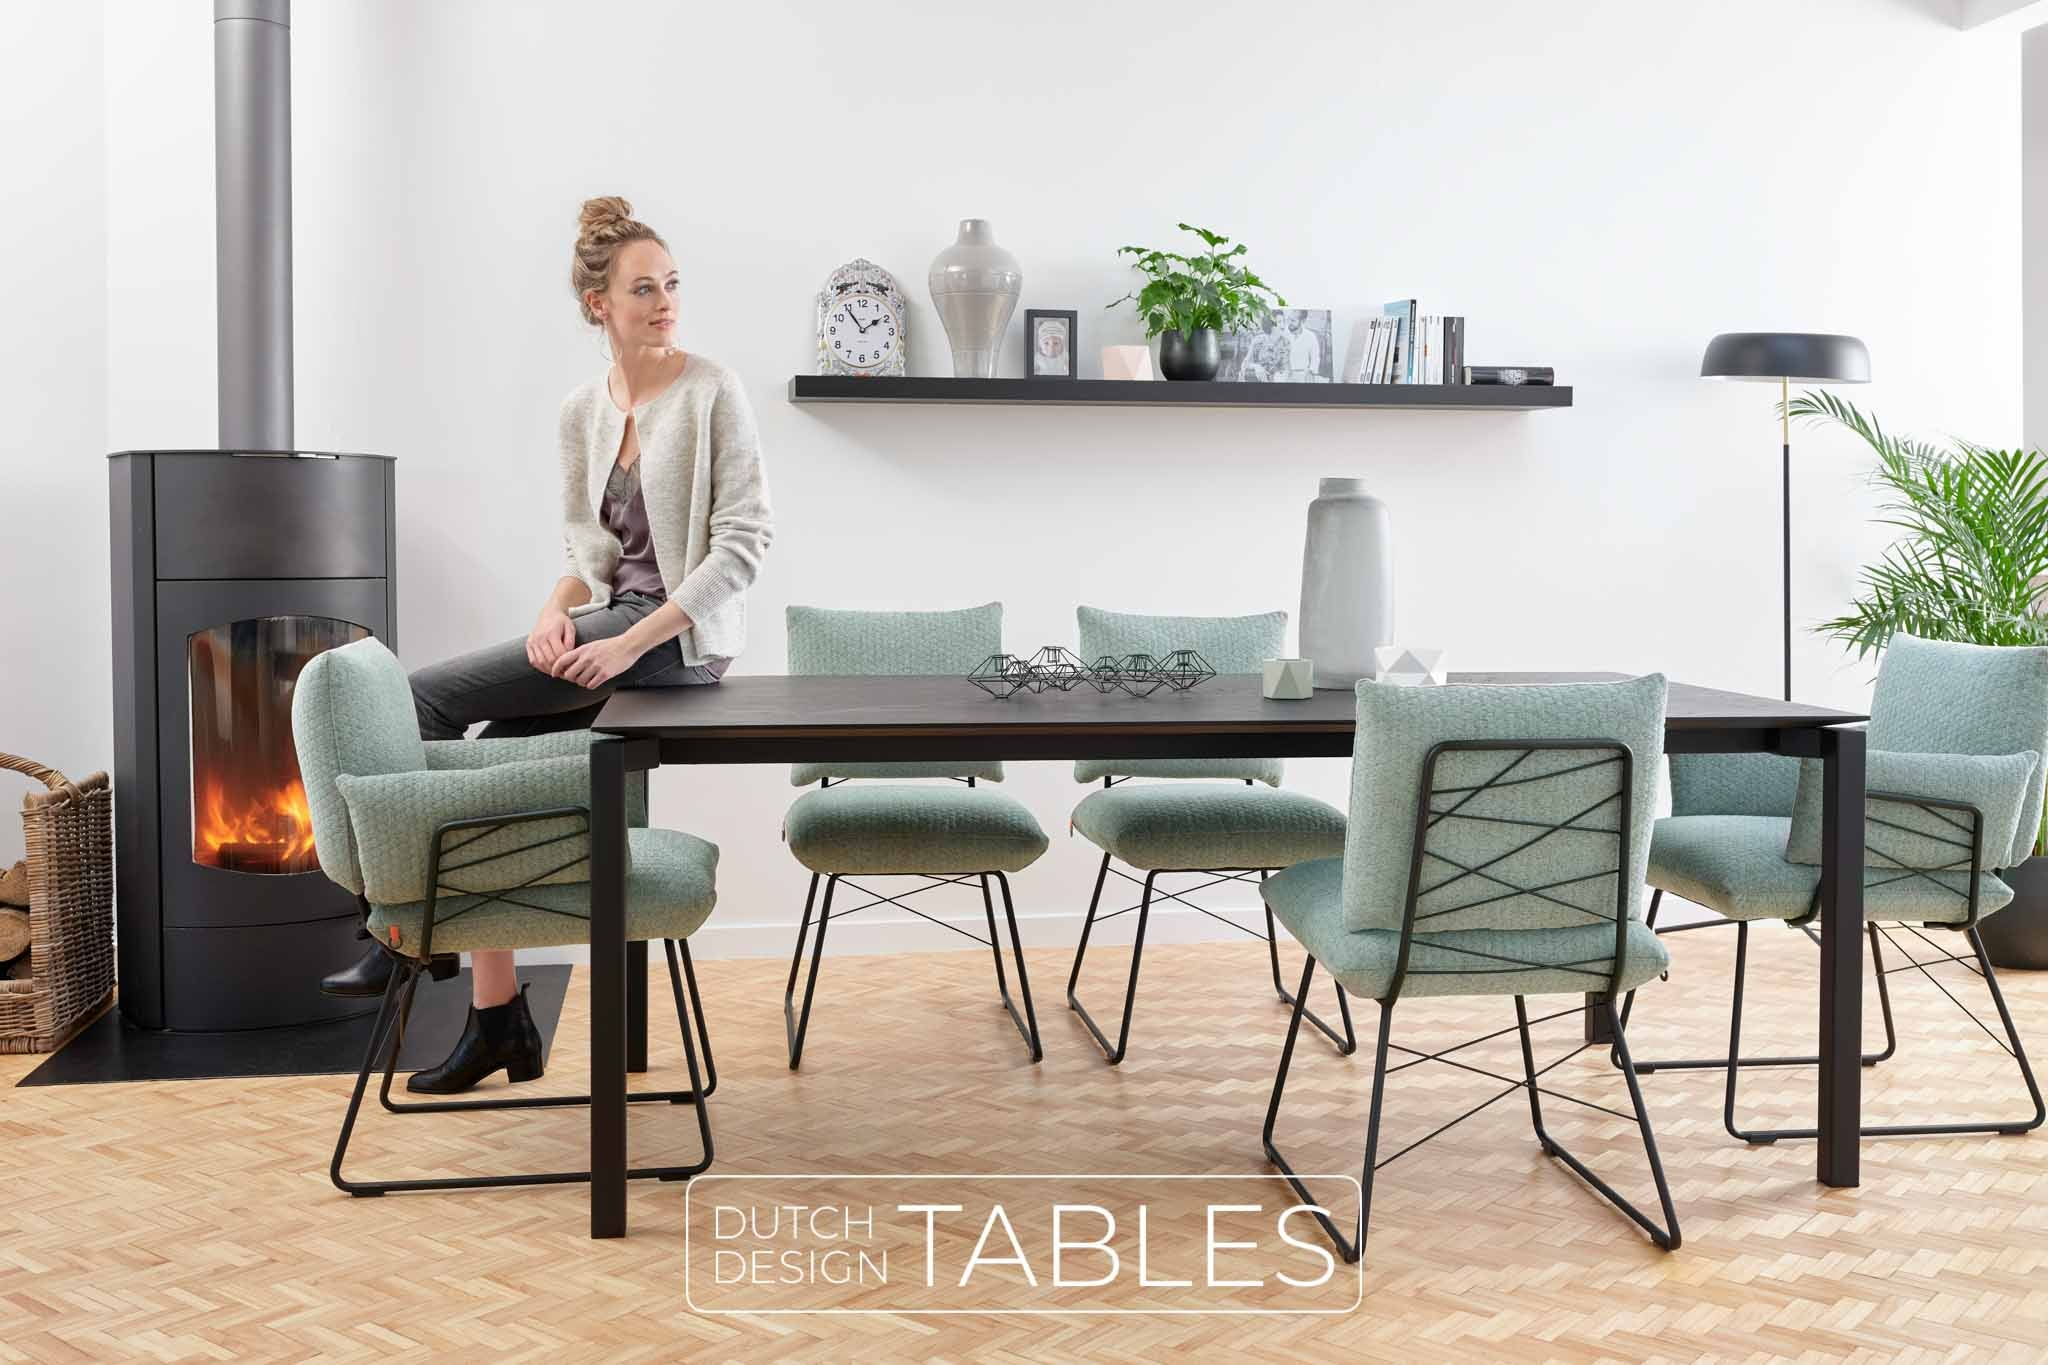 Stoel Mobitec Cosy Met Armleuning Cosy To The Max Kom Proefzitten Dutch Design Tables